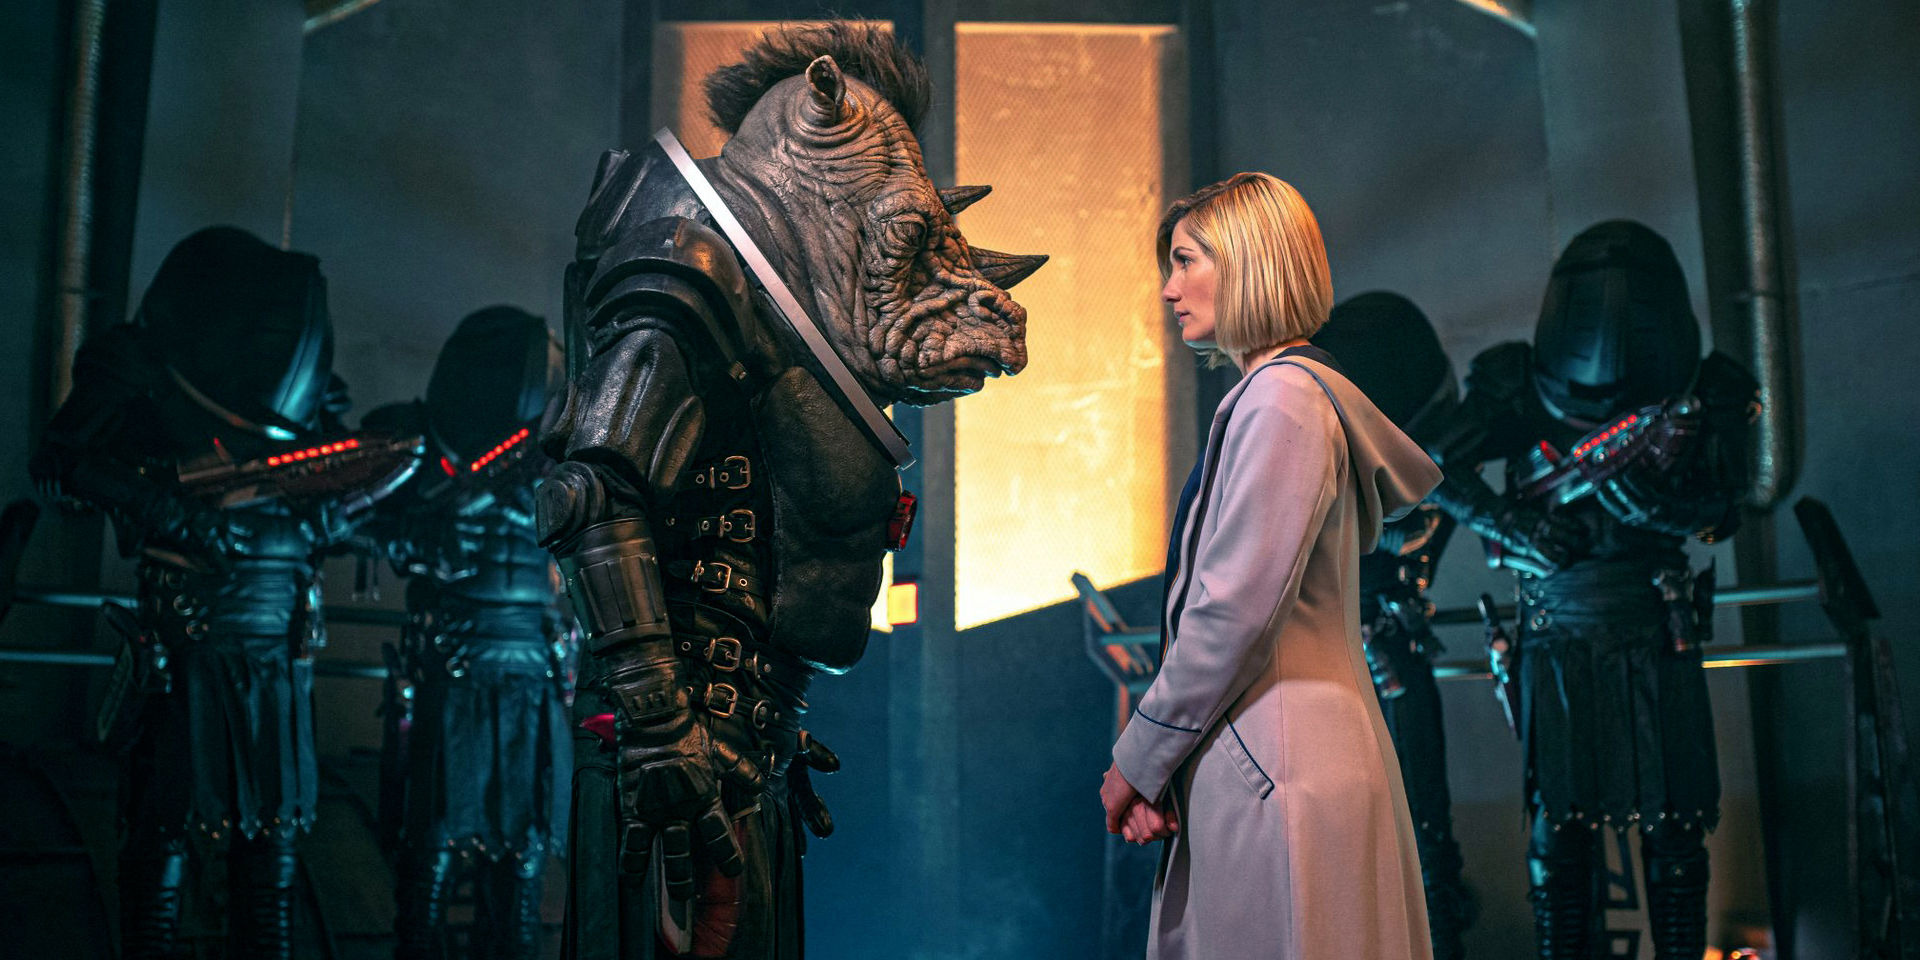 Doctor Who — s12e05 — Fugitive of the Judoon